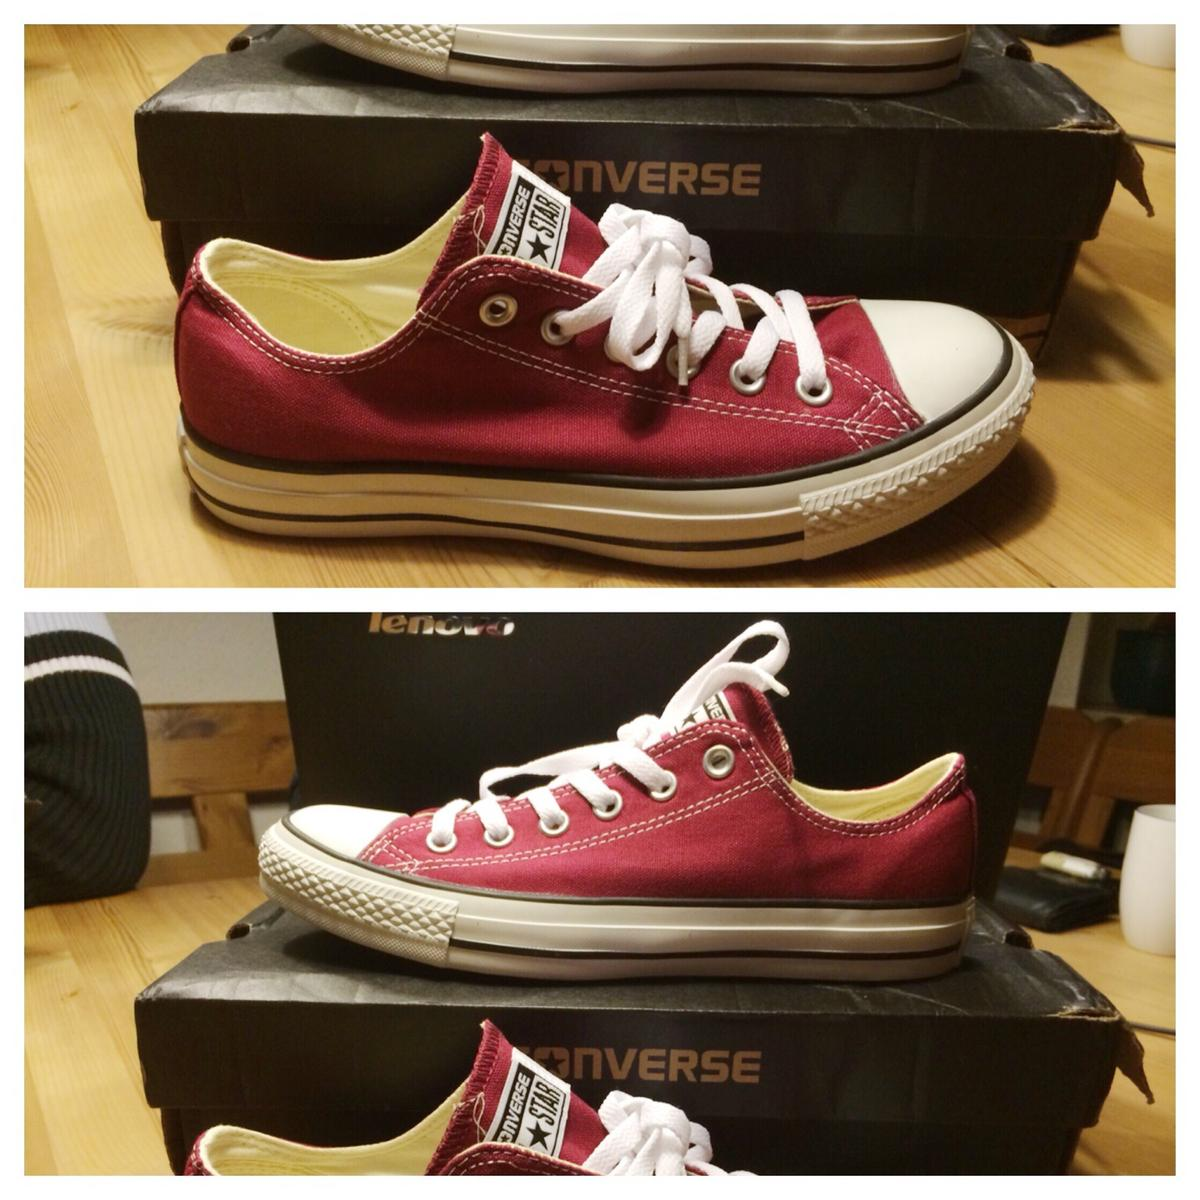 Converse All Star Chucks - weinrot - Gr 40